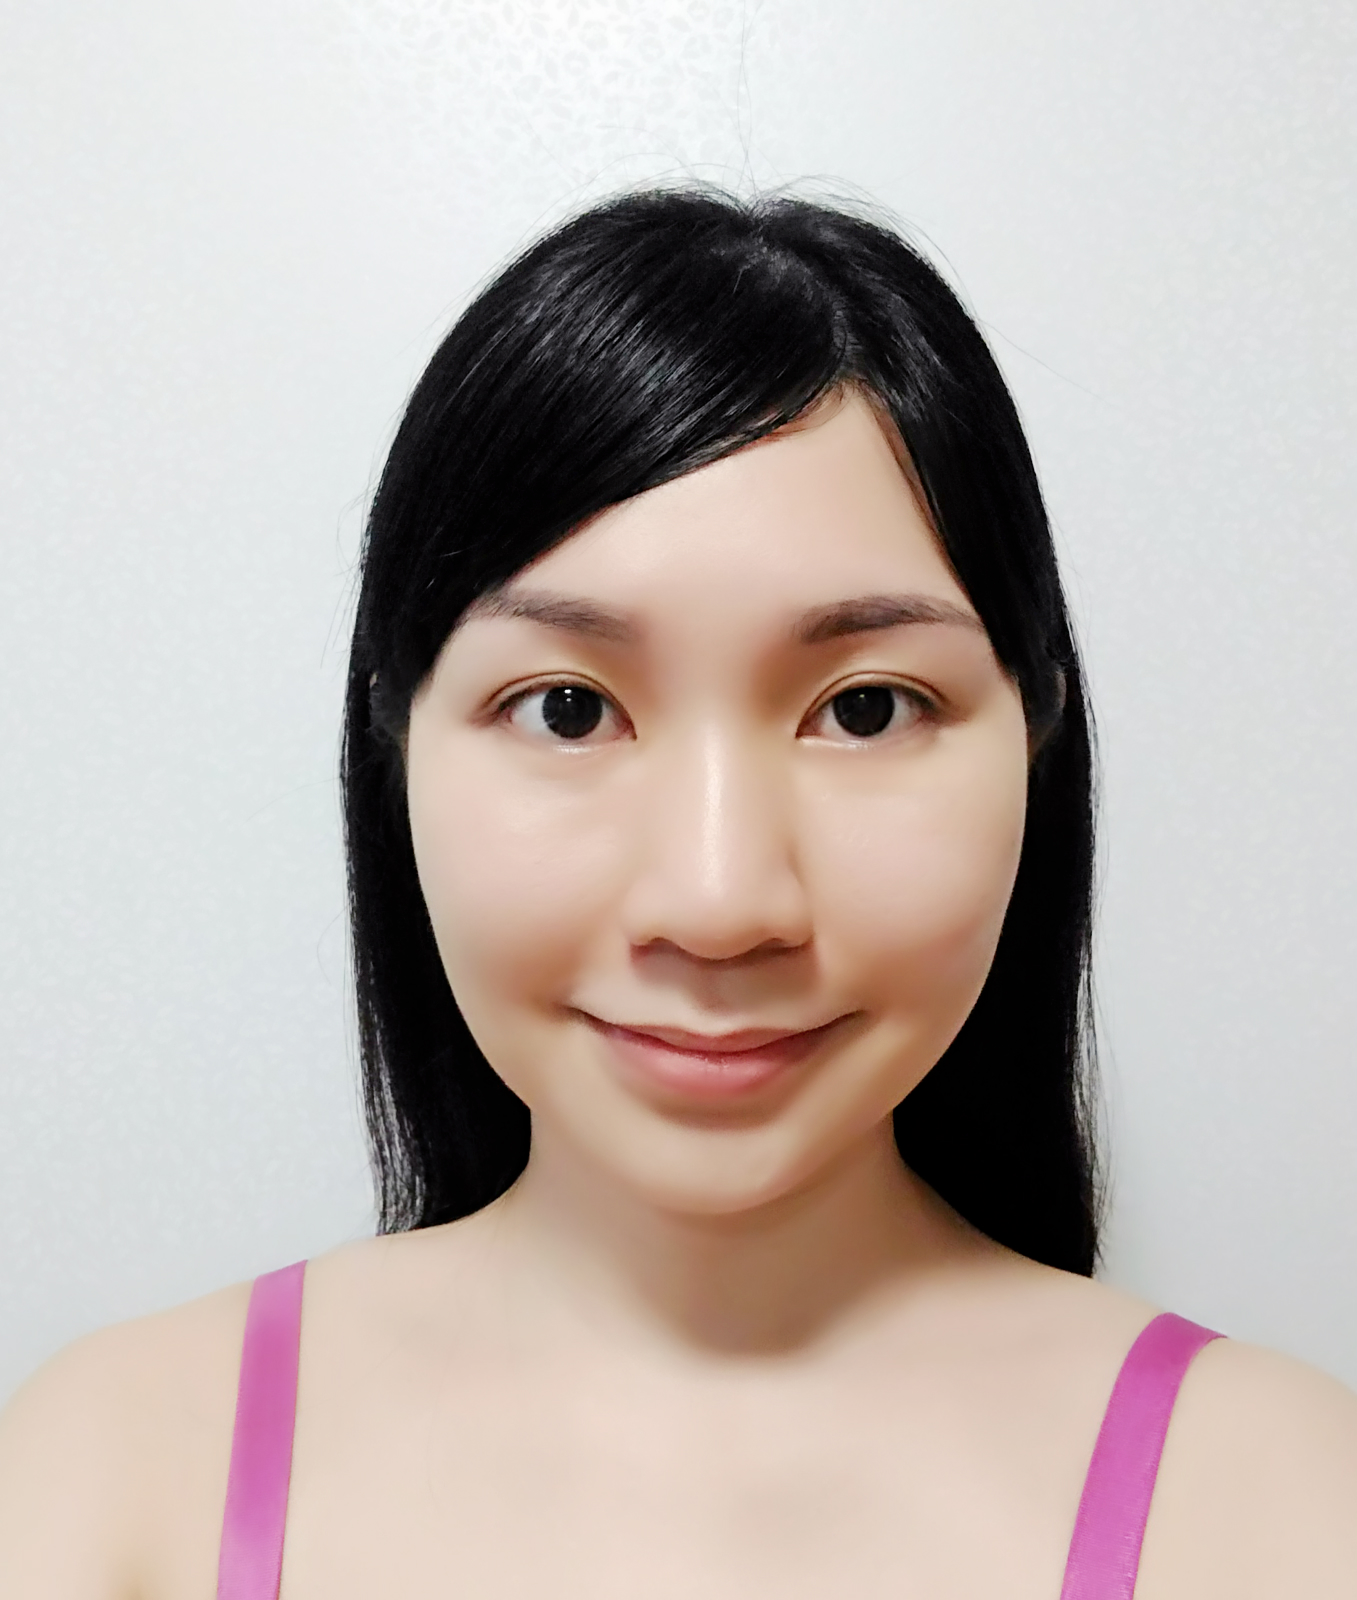 Review Misty Brow Eyebrow Embroidery With Facework Aesthetic